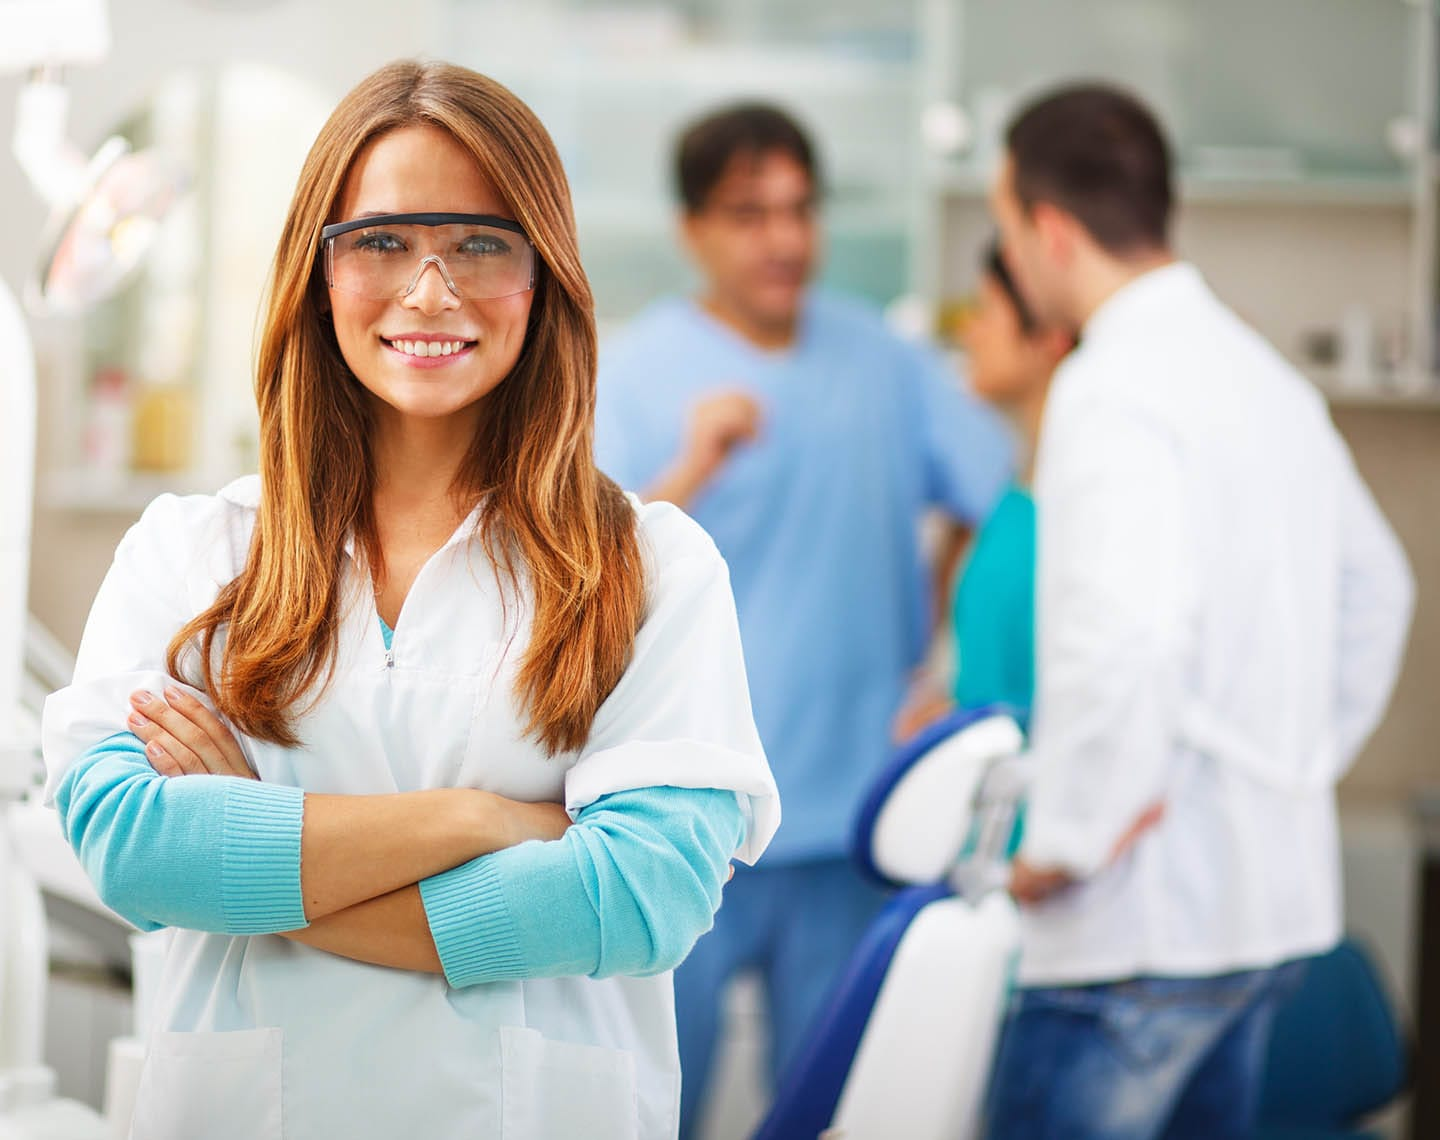 Dental Assistant smiling with arms crossed